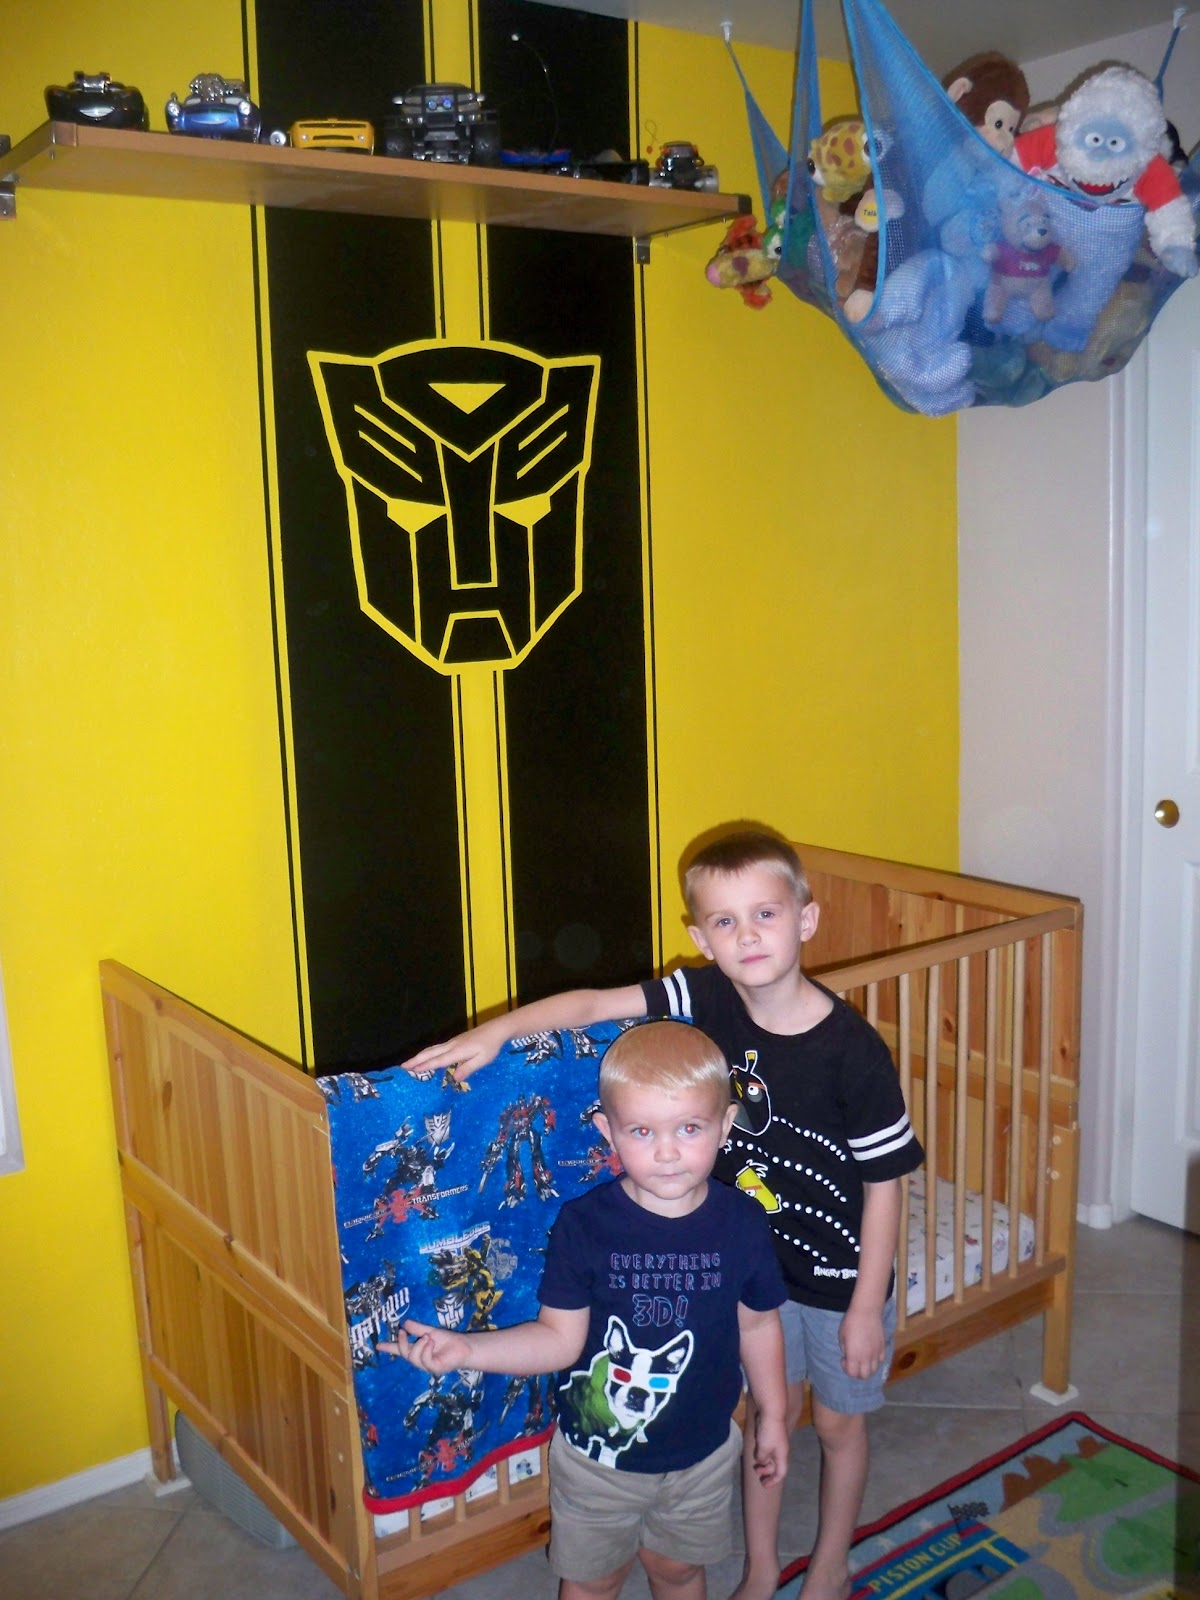 Heather Amp Jon Transformers Little Boys Bedroom